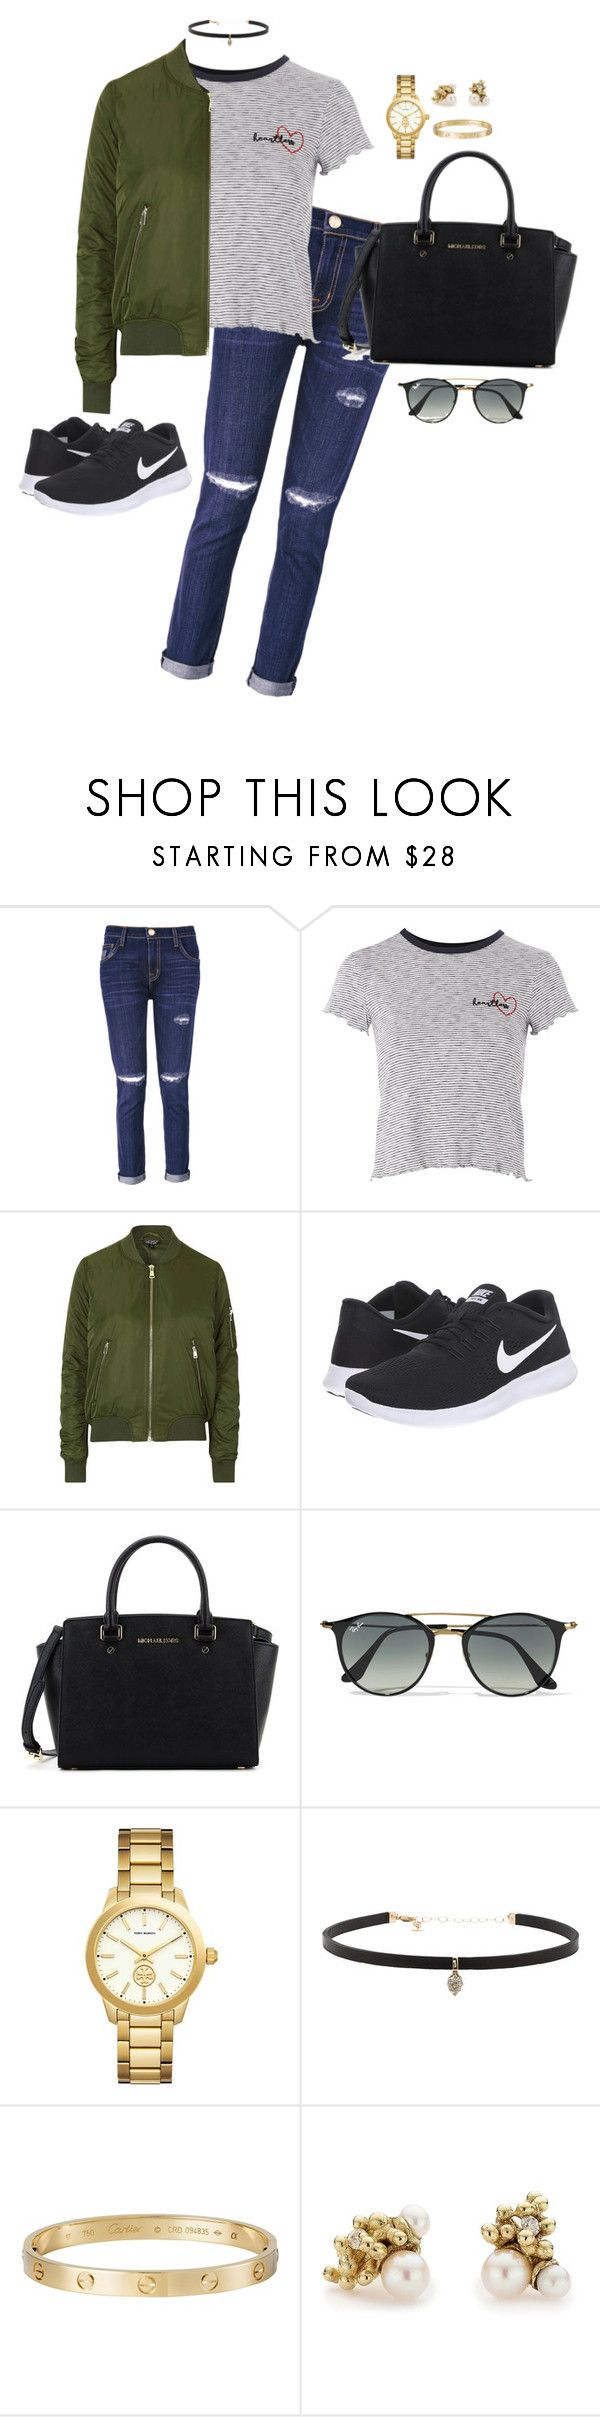 """""""Outfit 623"""" by caa123 ❤ liked on Polyvore featuring Current/Elliott, Topshop, NIKE, Michael Kors, Ray-Ban, Tory Burch, Carbon & Hyde, Cartier and Ruth Tomlinson"""